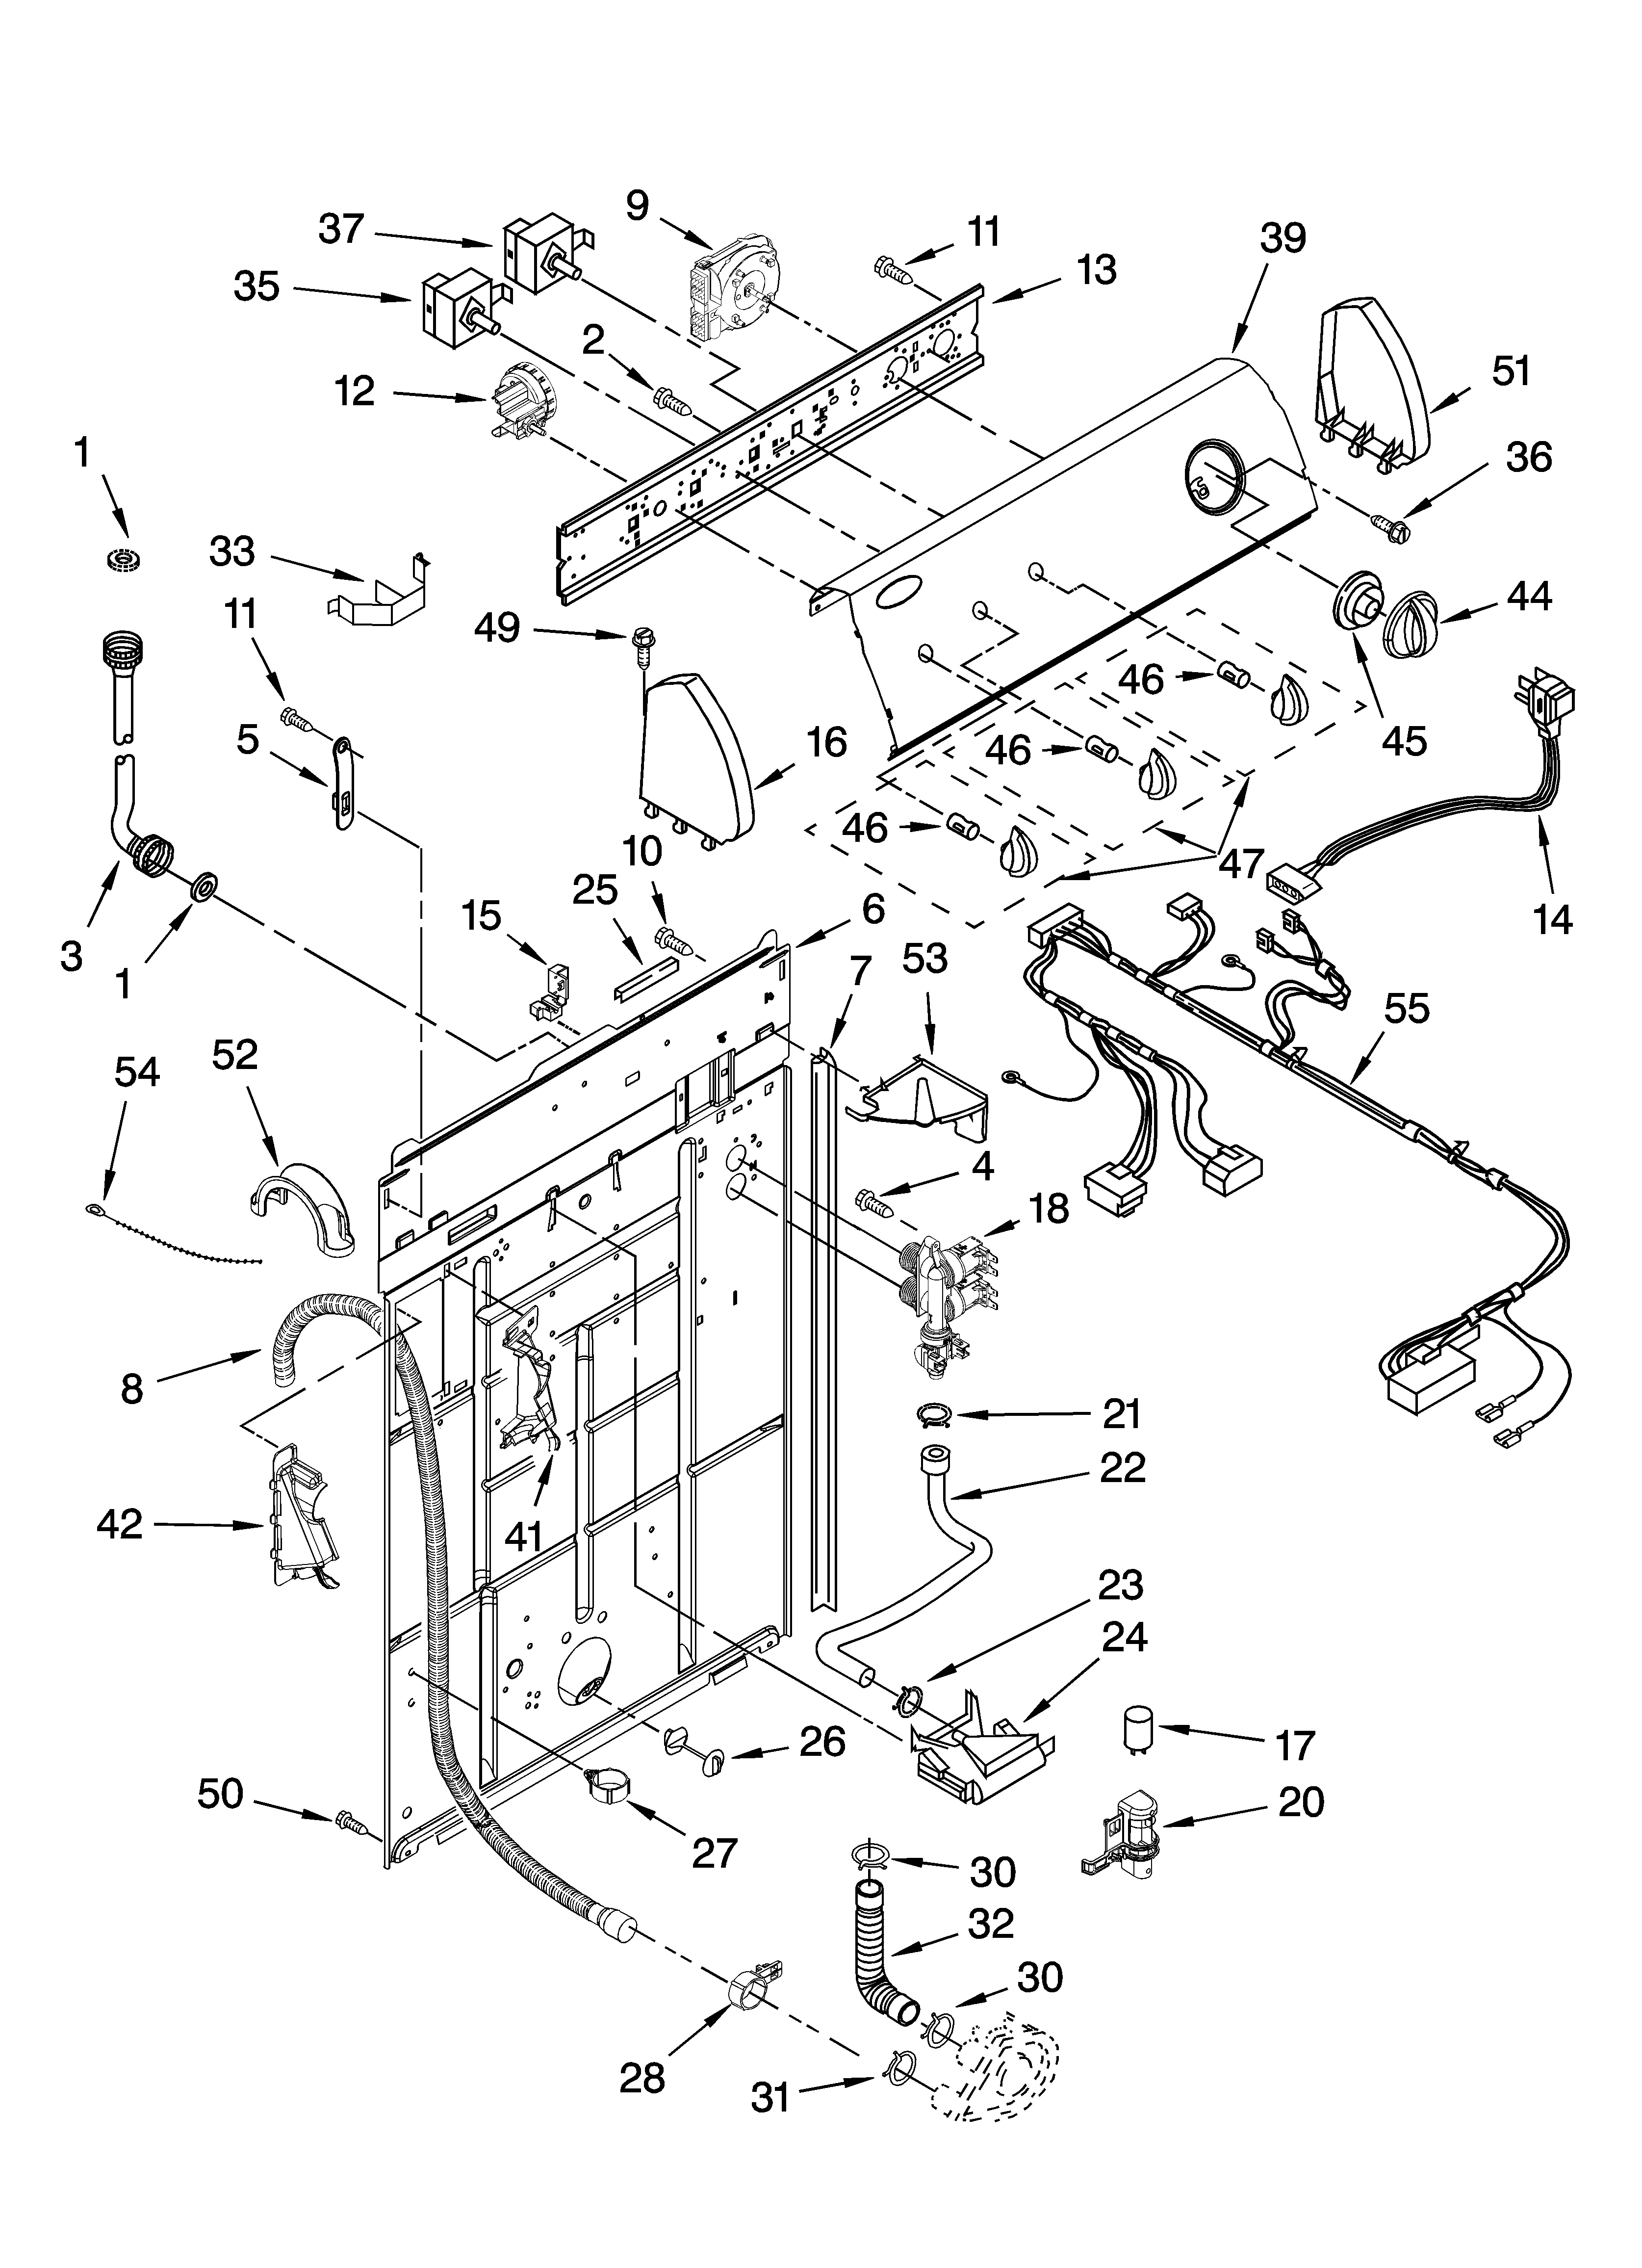 small resolution of whirlpool wtw5520sq0 controls and rear panel parts diagram